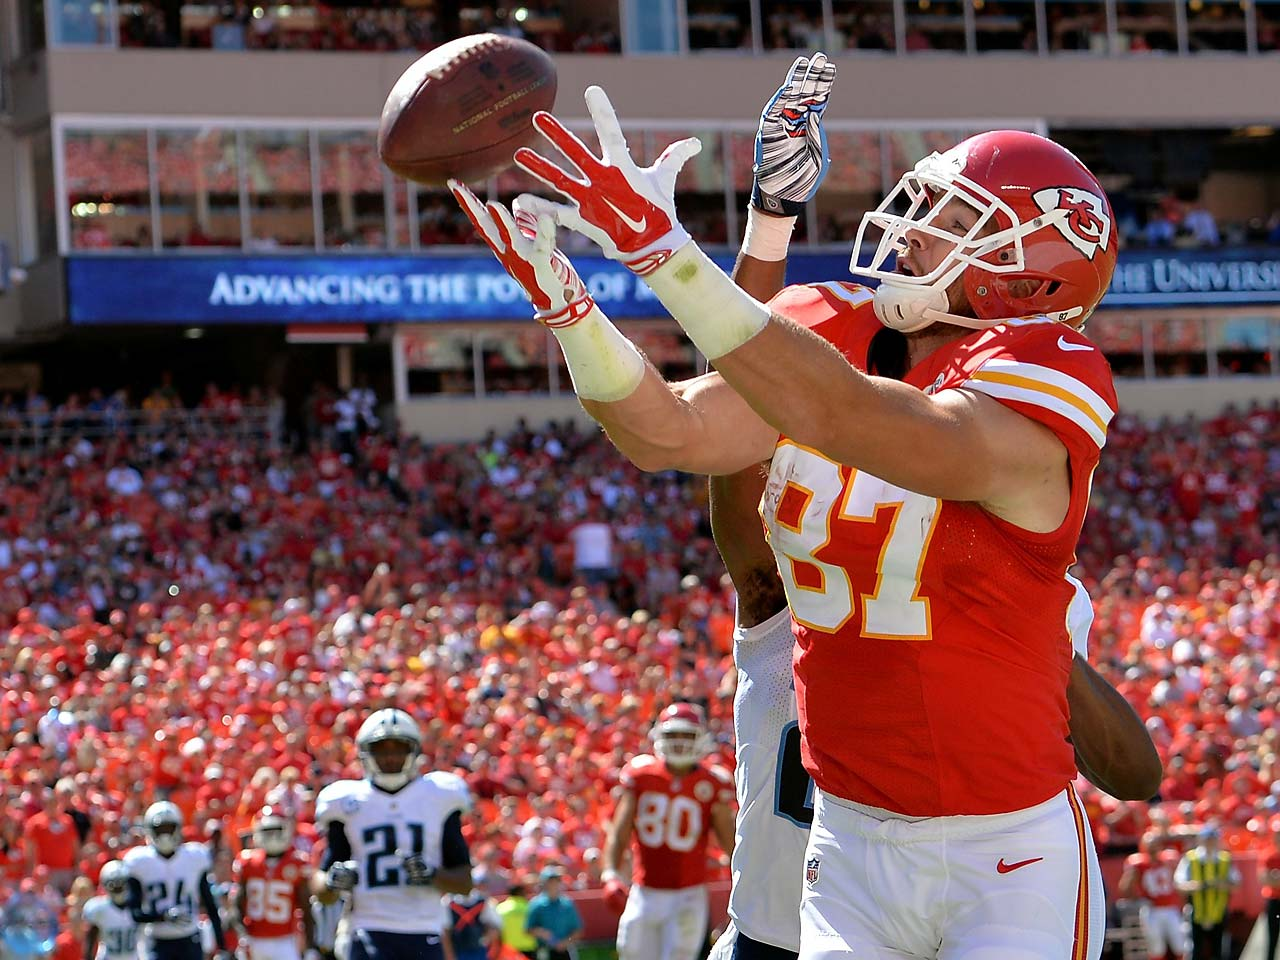 Travis Kelce of the Kansas City Chiefs reaches out for the ball in the endzone as Blidi Wreh-Wilson of the Tennessee Titans defends during the second half.